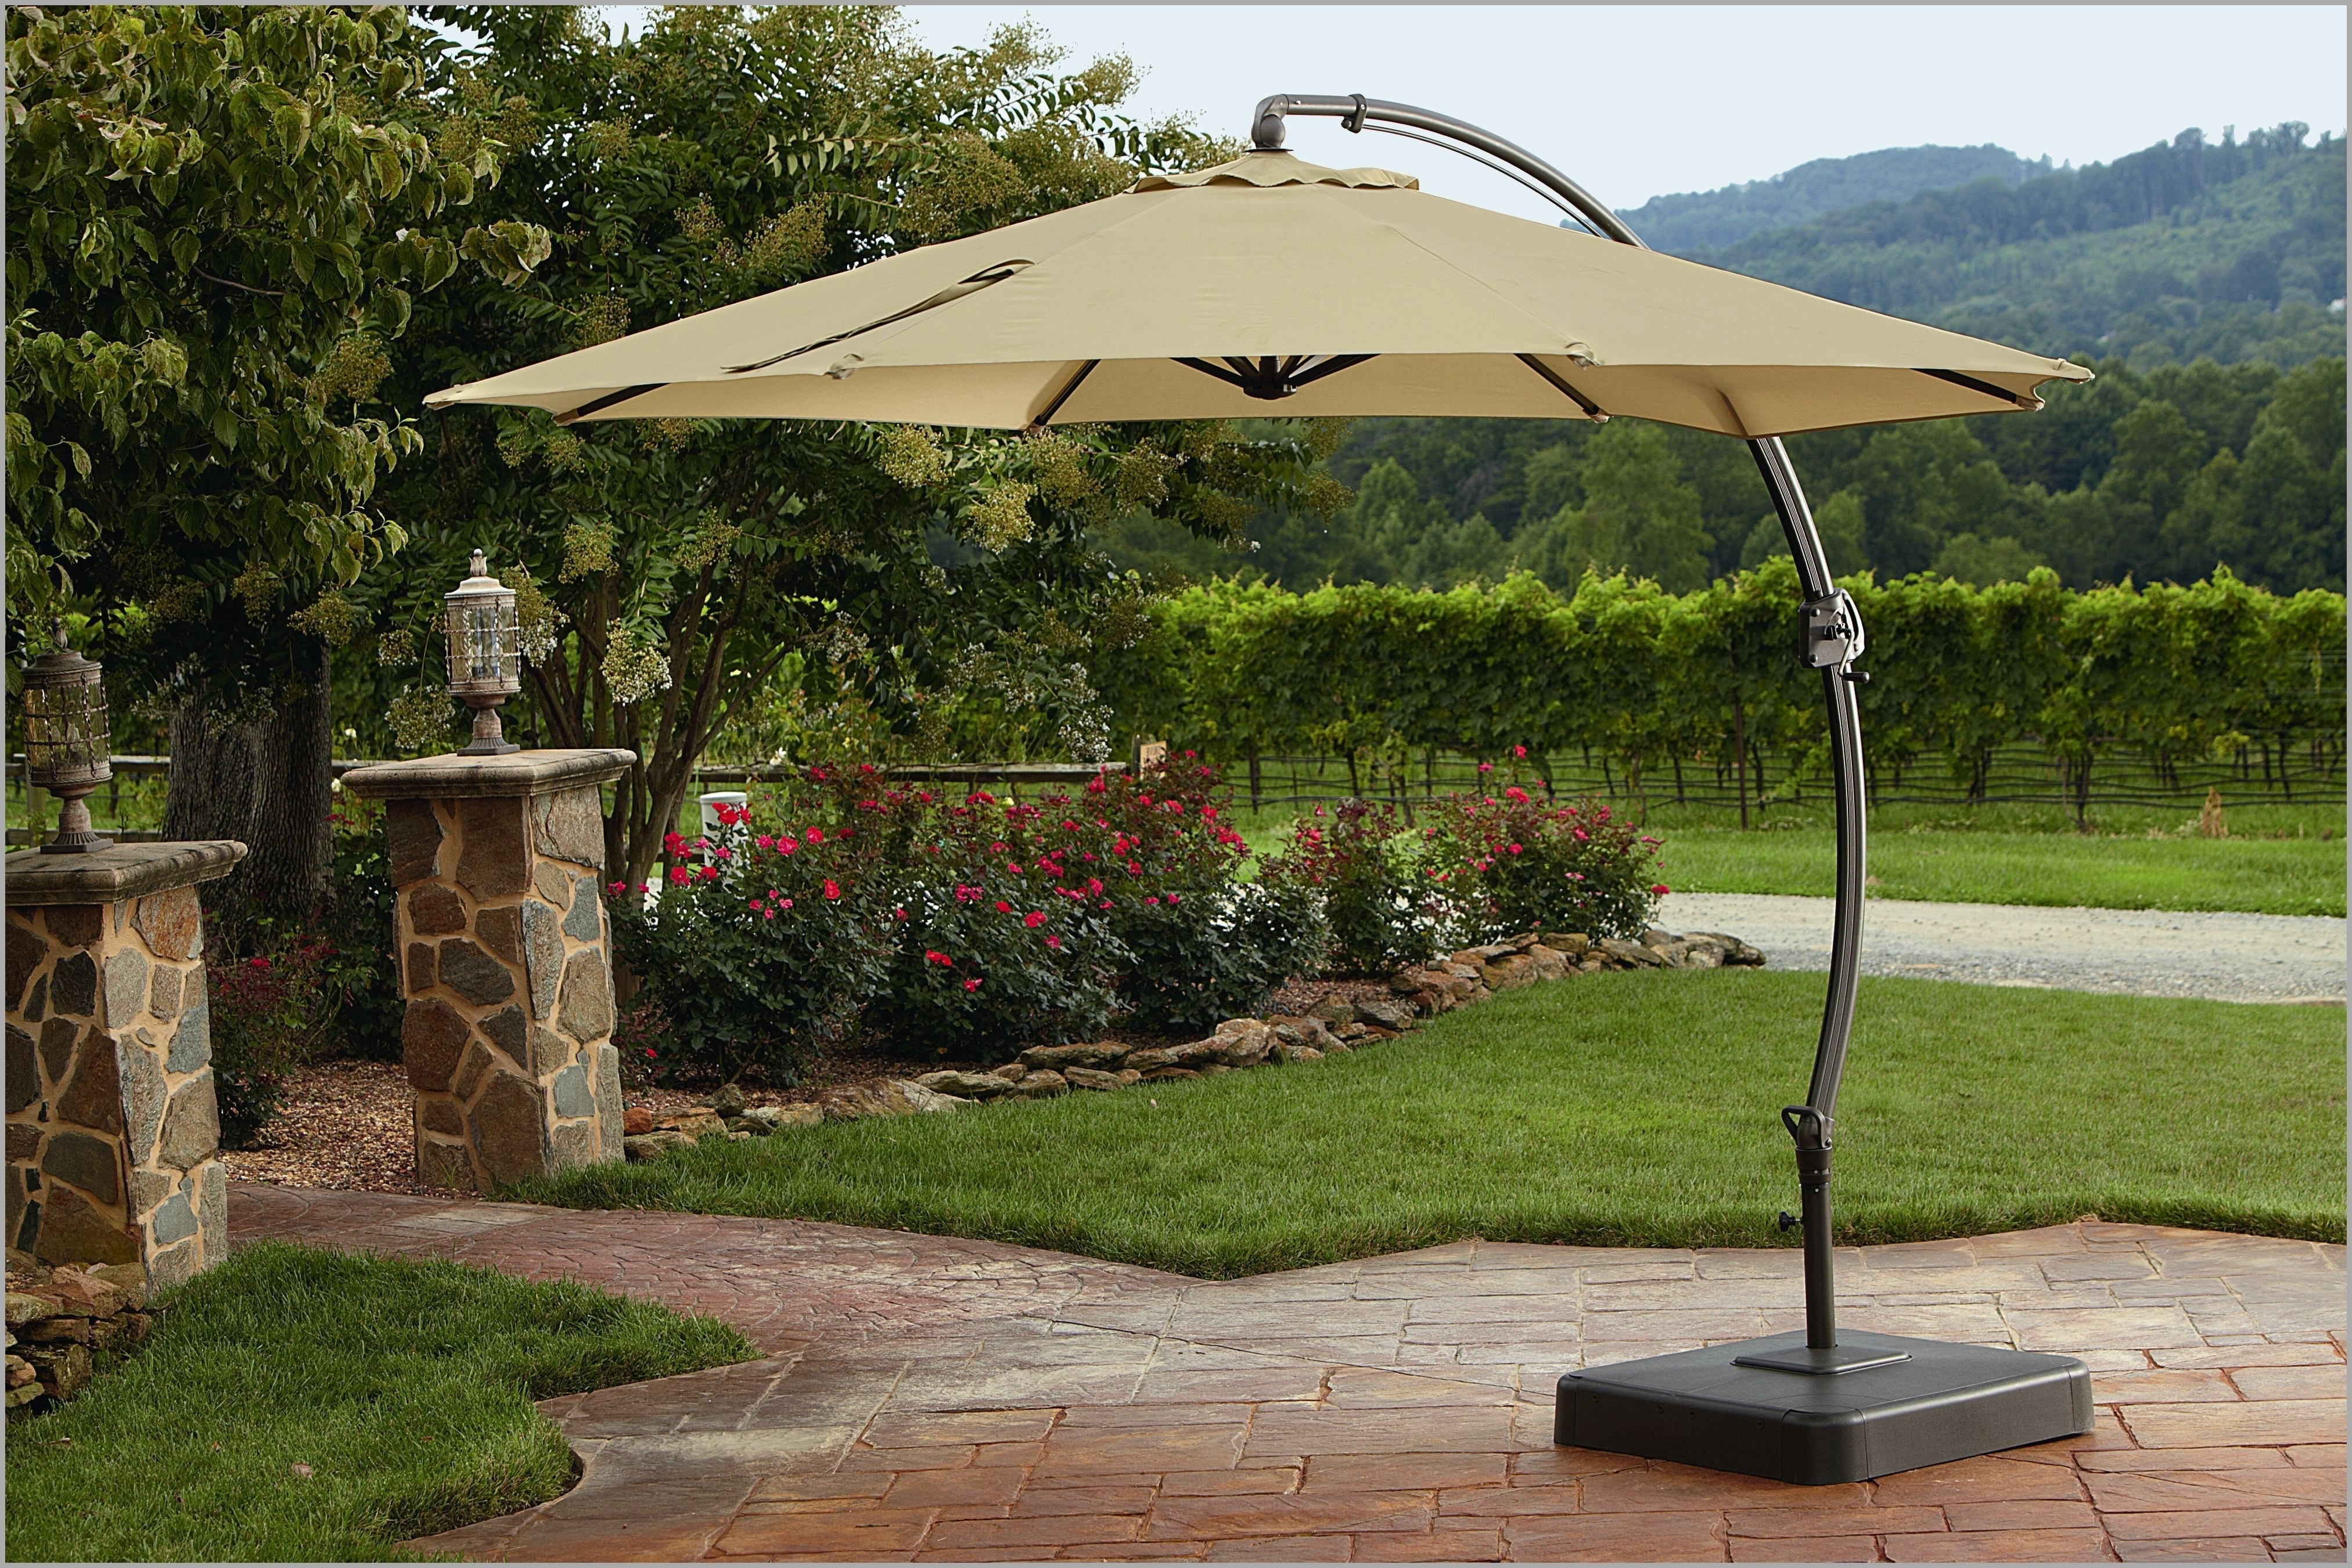 Decent Patio Umbrellas Clearance Fset Rectangular Lowes Chairs With Regard To Best And Newest Rectangular Offset Patio Umbrellas (Gallery 7 of 20)